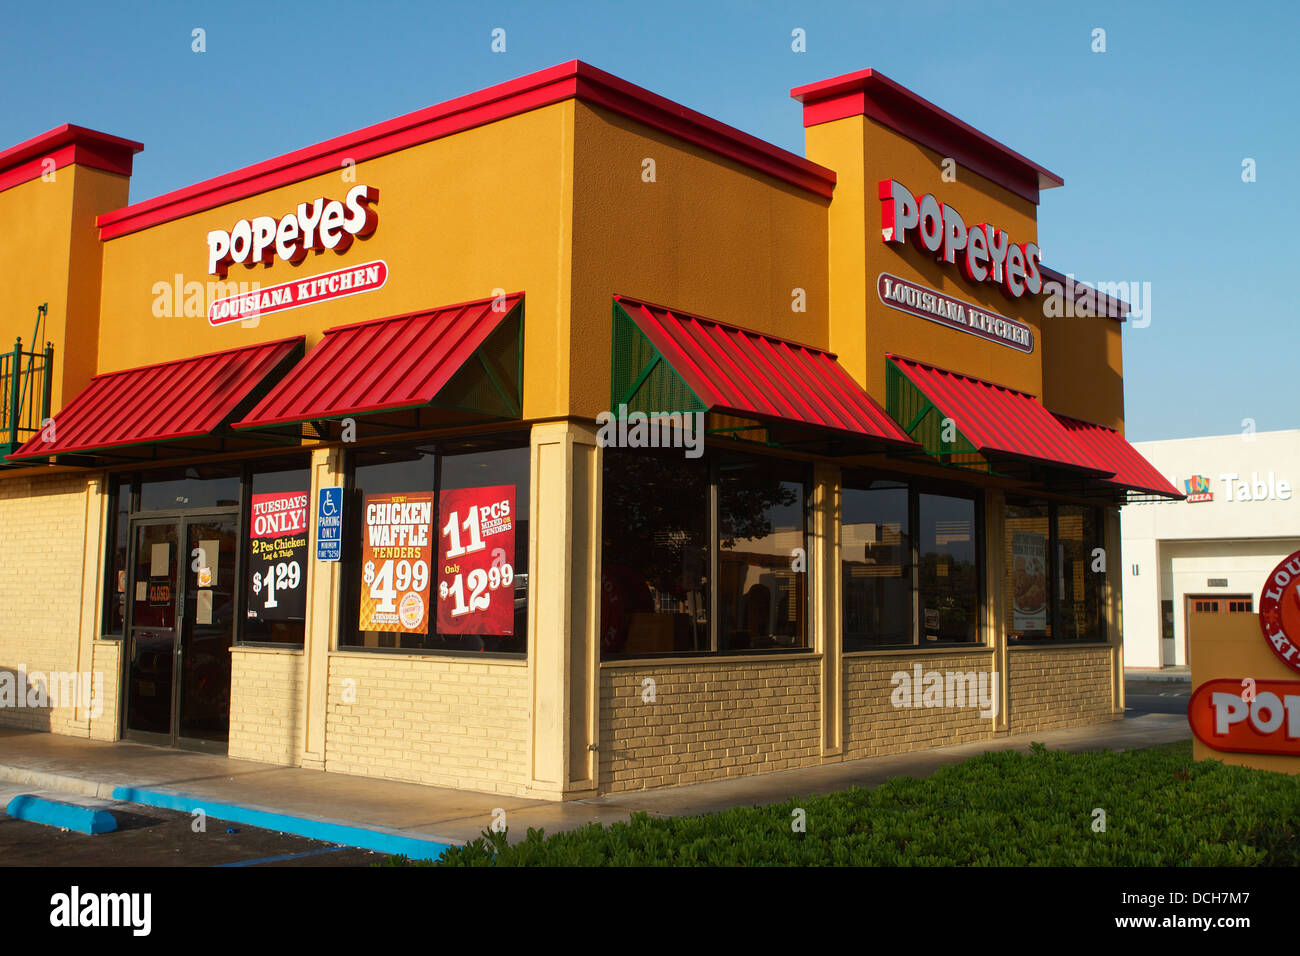 popeyes louisiana kitchen restaurant in california with a new